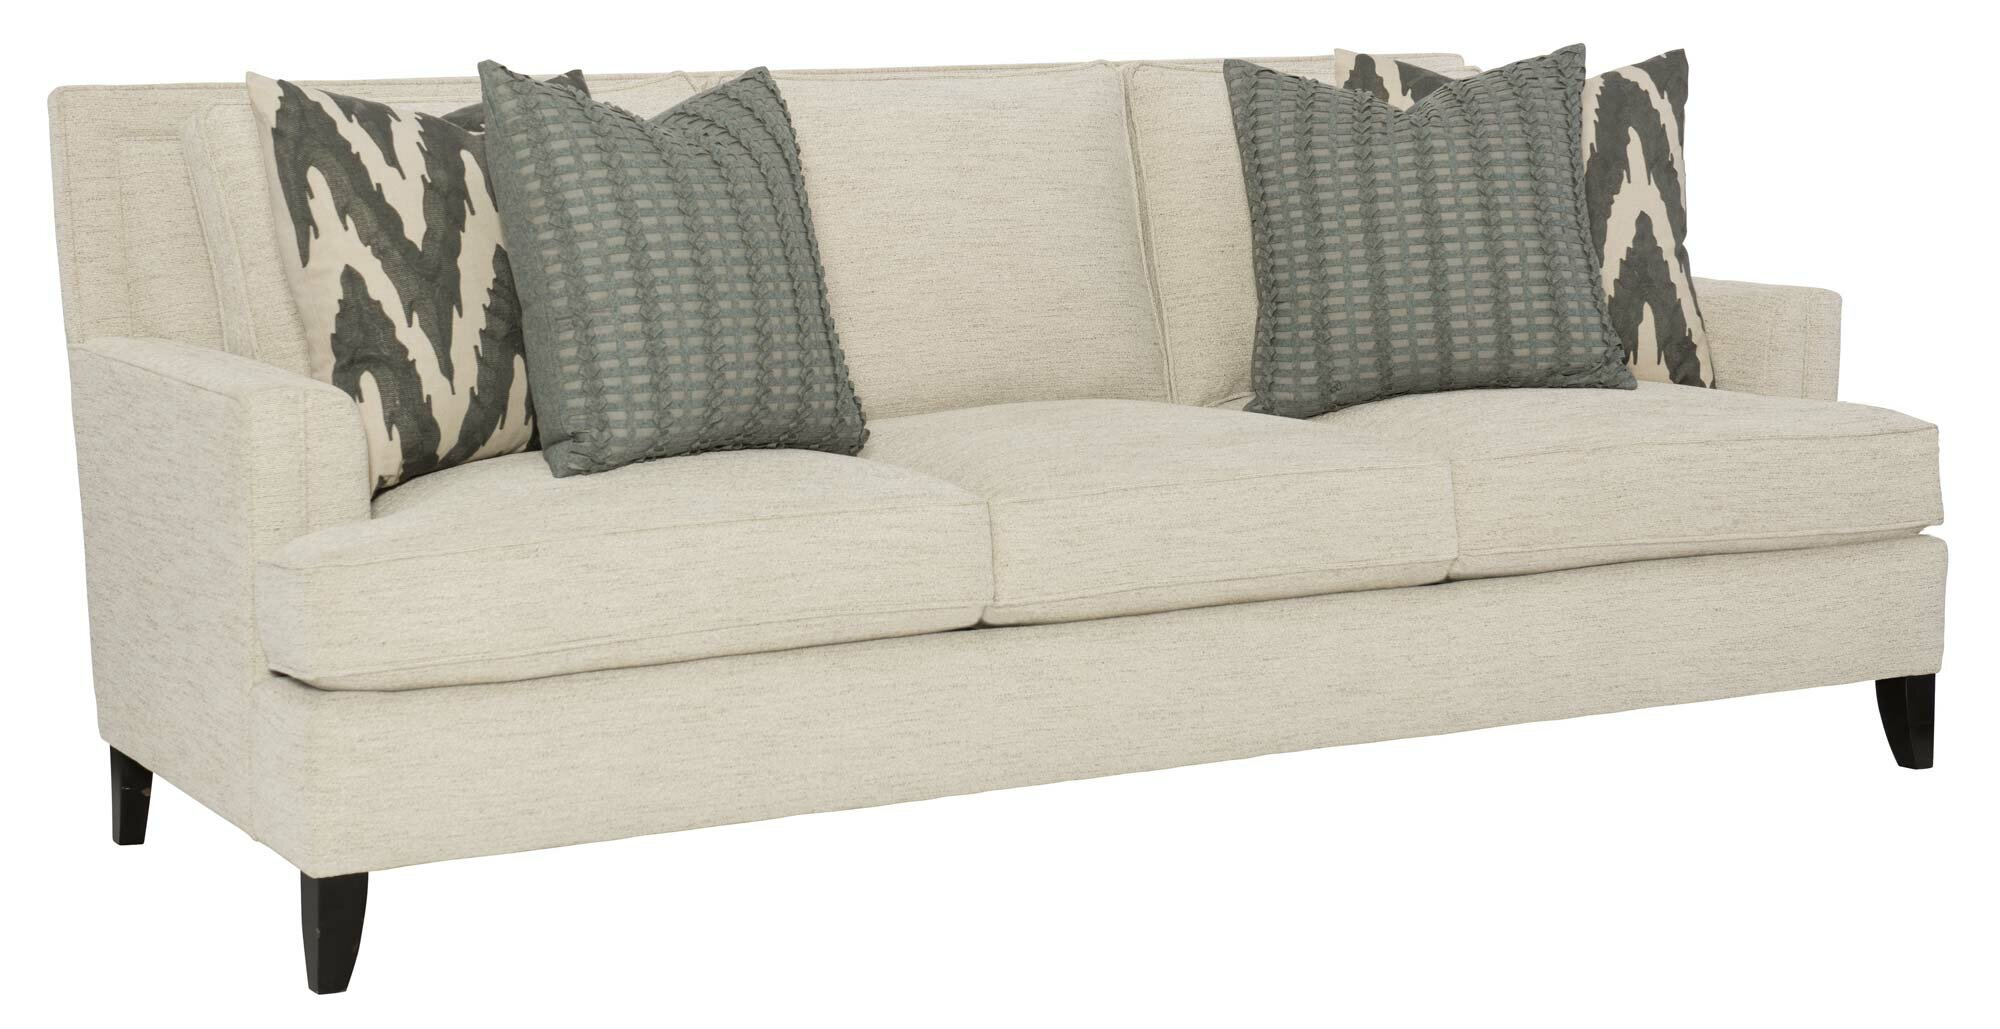 Outstanding Bernhardt Brae Sofa Wayfair Home Interior And Landscaping Ponolsignezvosmurscom